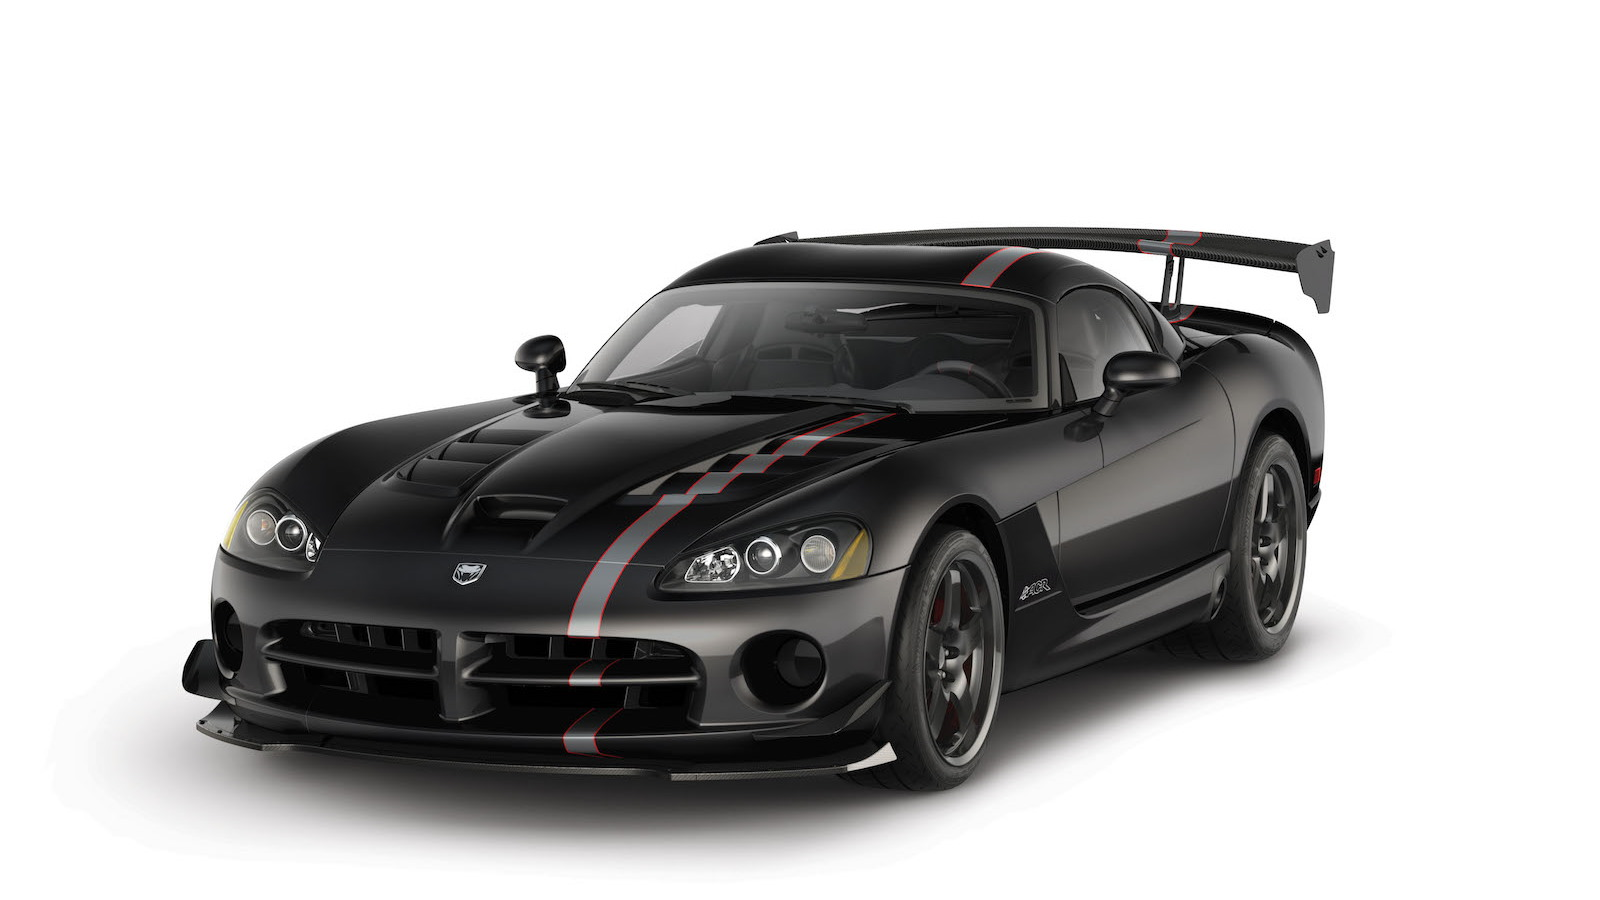 2010 Dodge Viper ACR VooDoo Edition